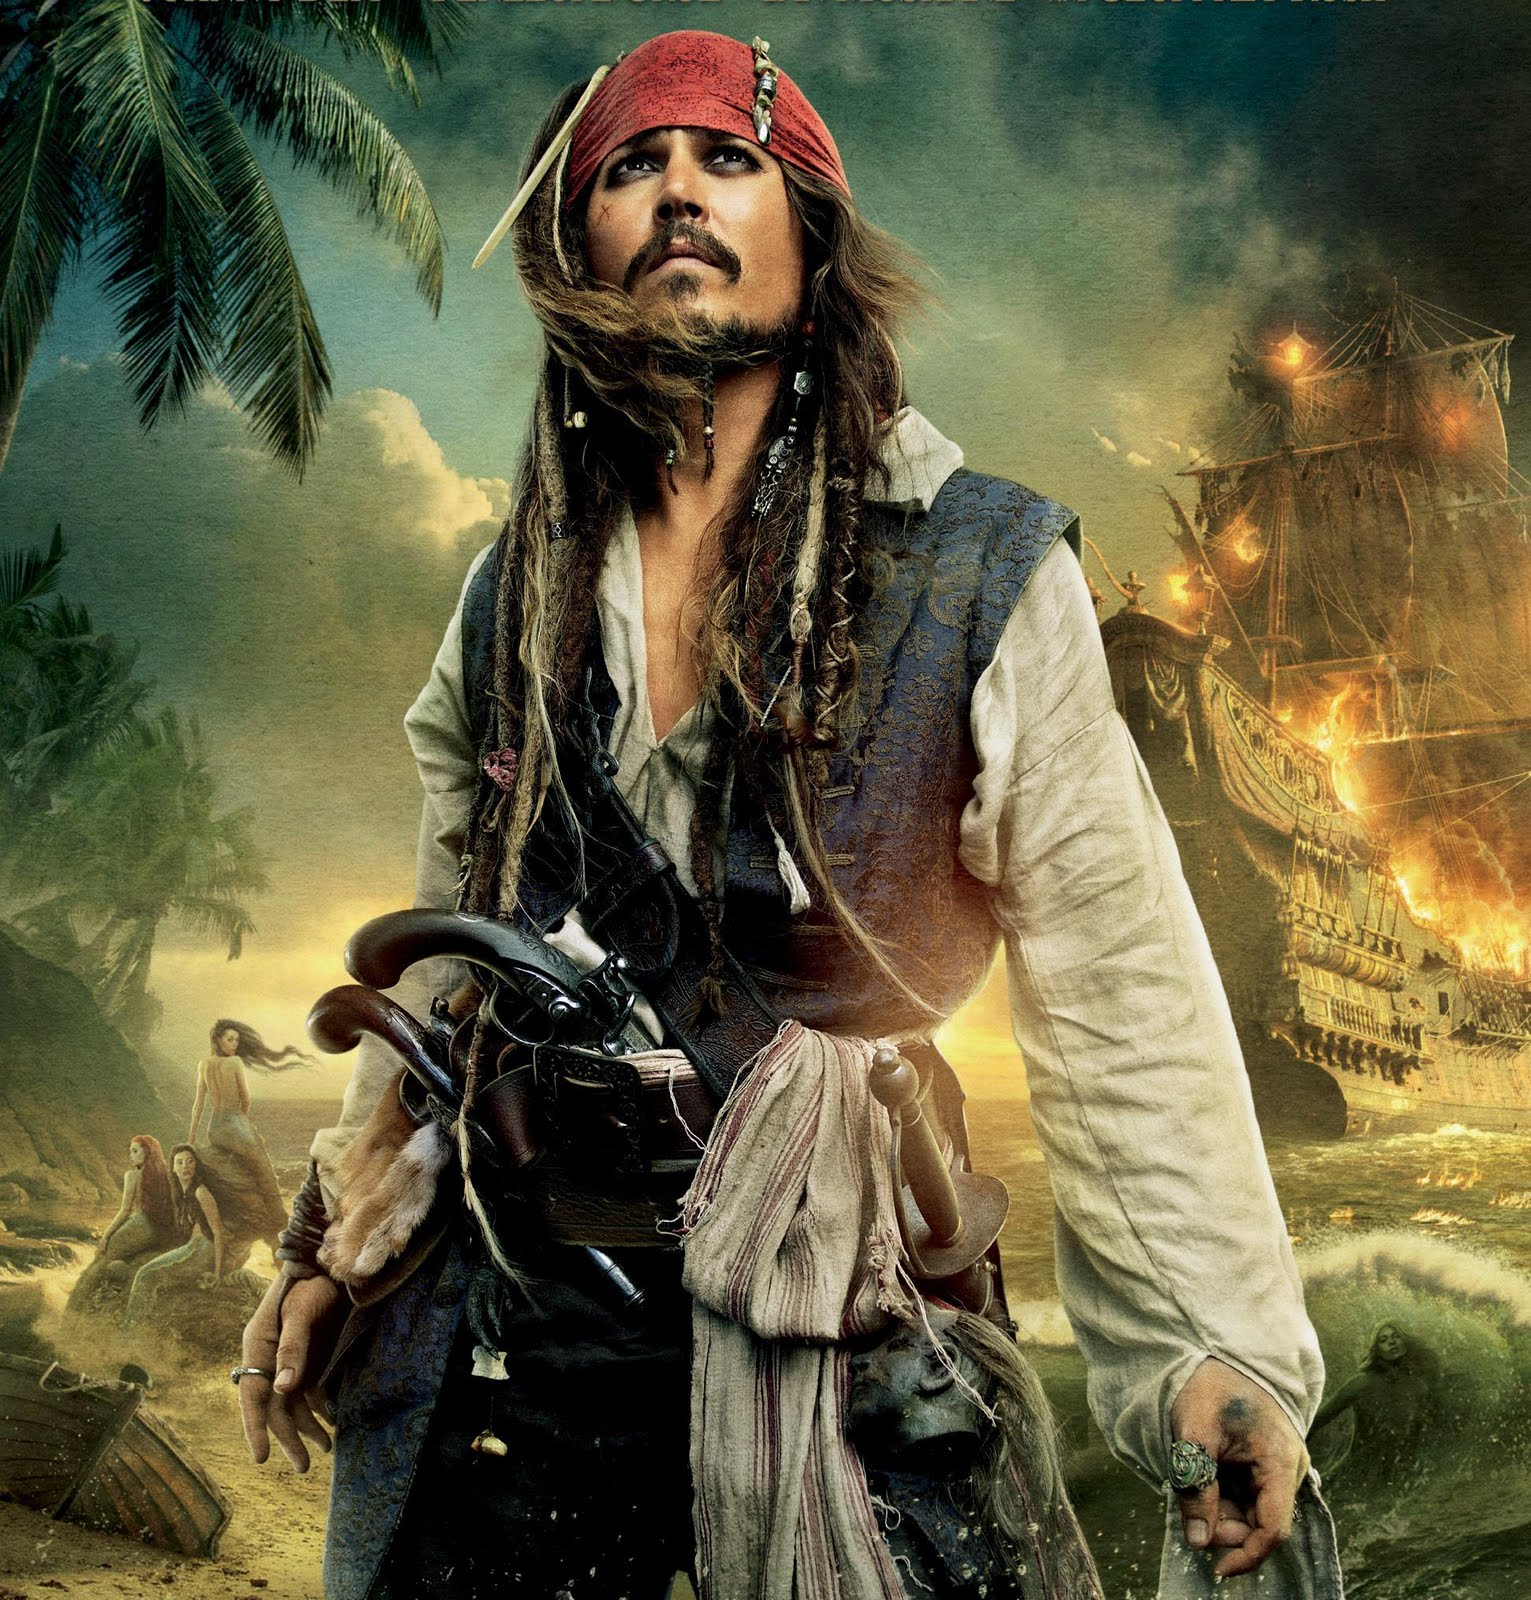 The Pirate Filme Photoplanet Pirates Of The Caribbean On Stranger Tides